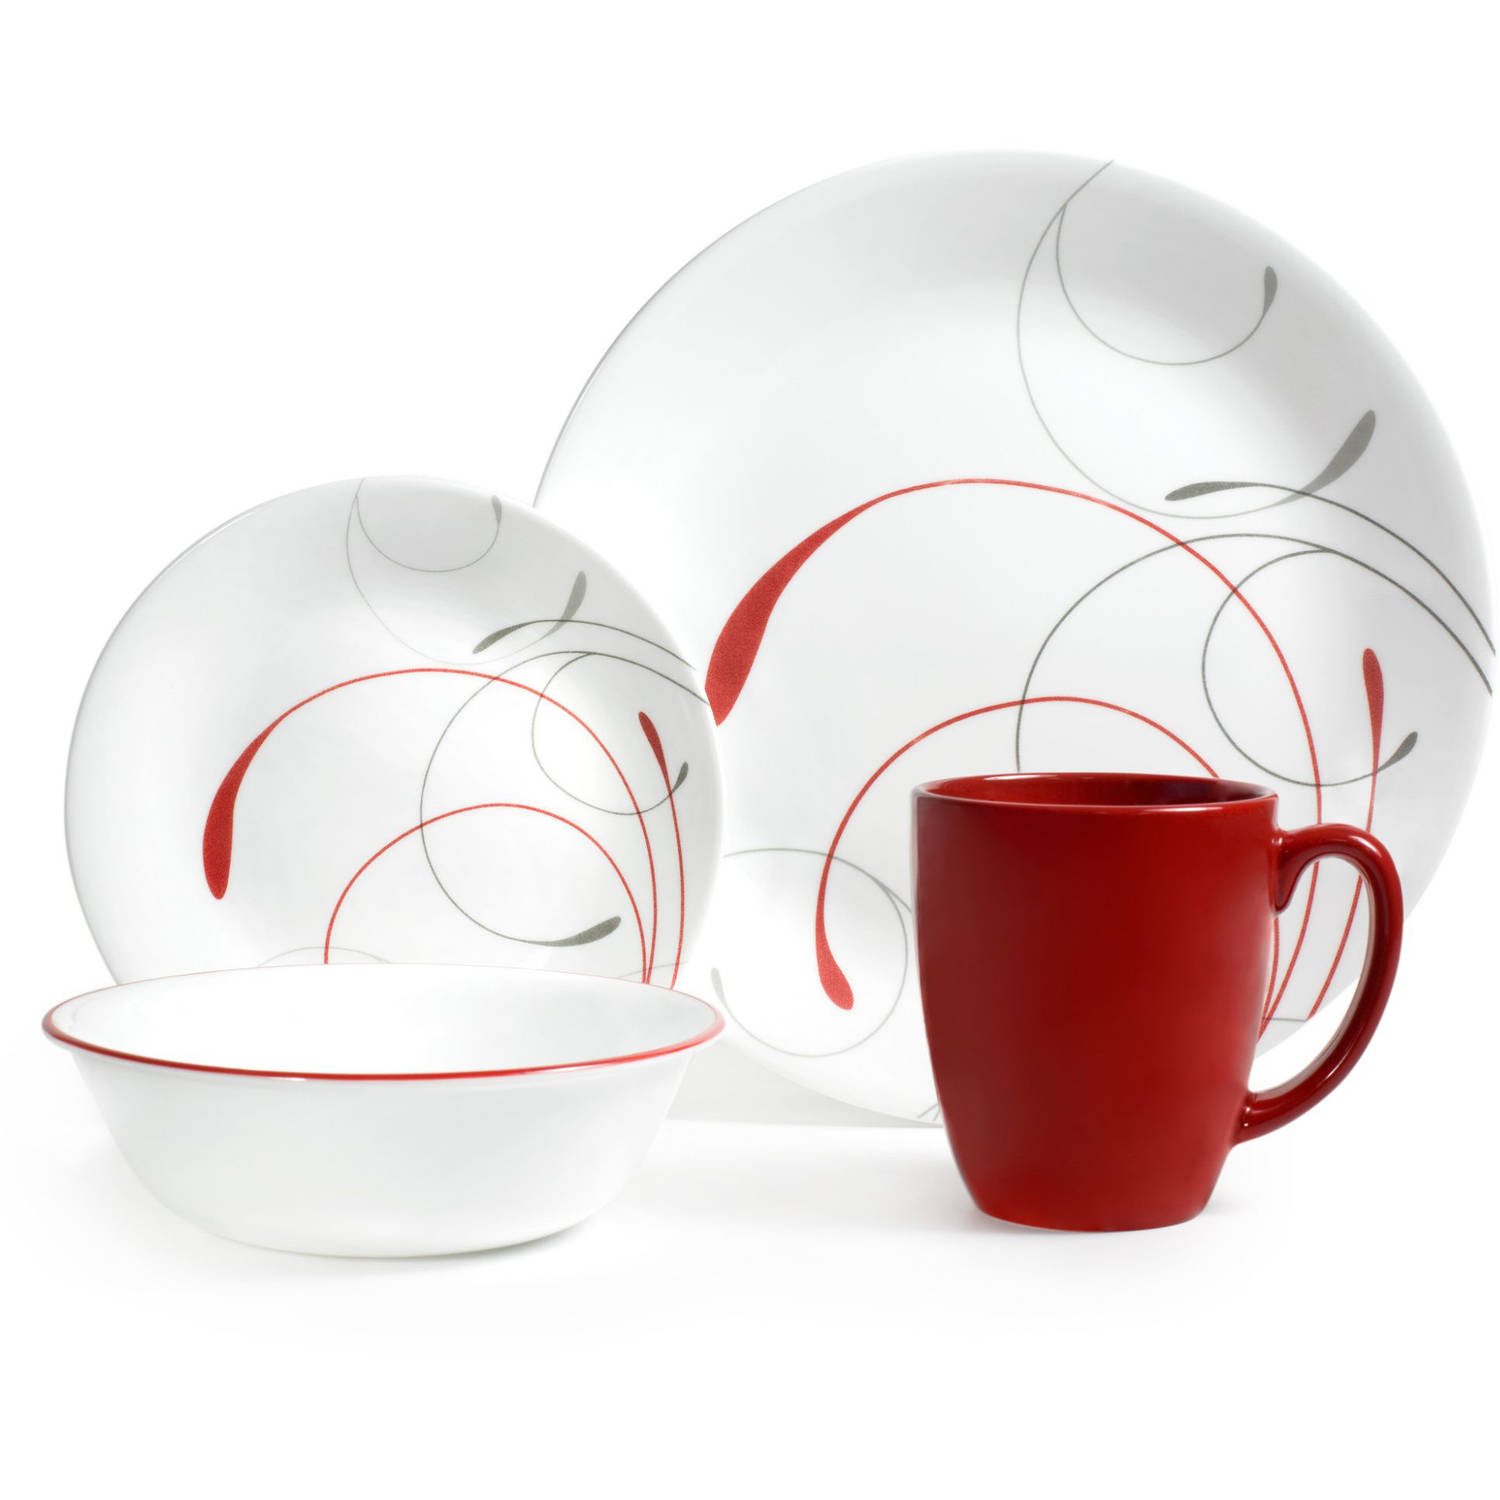 Corelle Livingware 16-Piece Dinnerware Set, Splendor Coupe